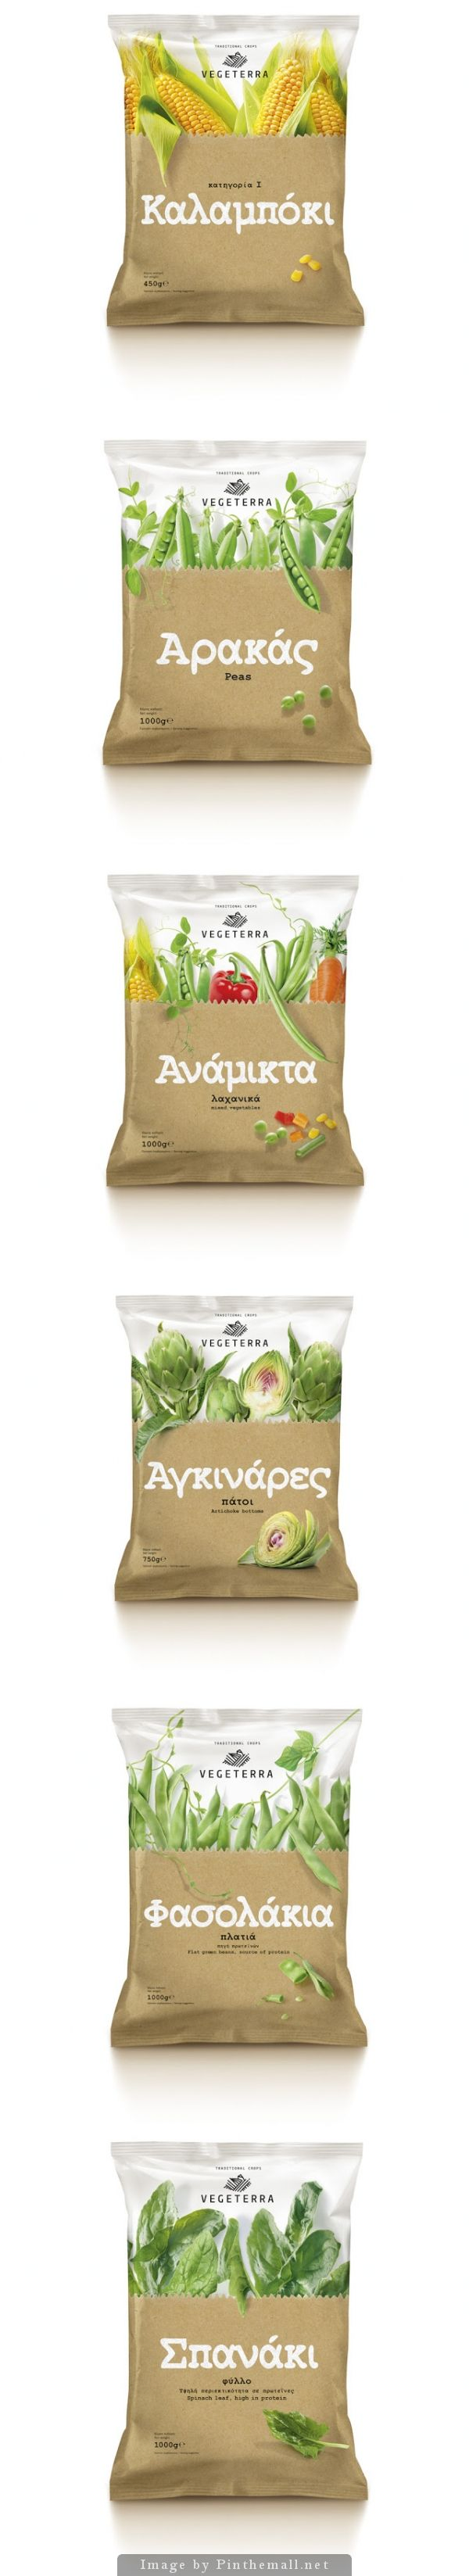 Vegeterra Frozen #Vegetables #packaging by mousegraphics - http://www.packagingoftheworld.com/2014/11/vegeterra-frozen-vegetables.html